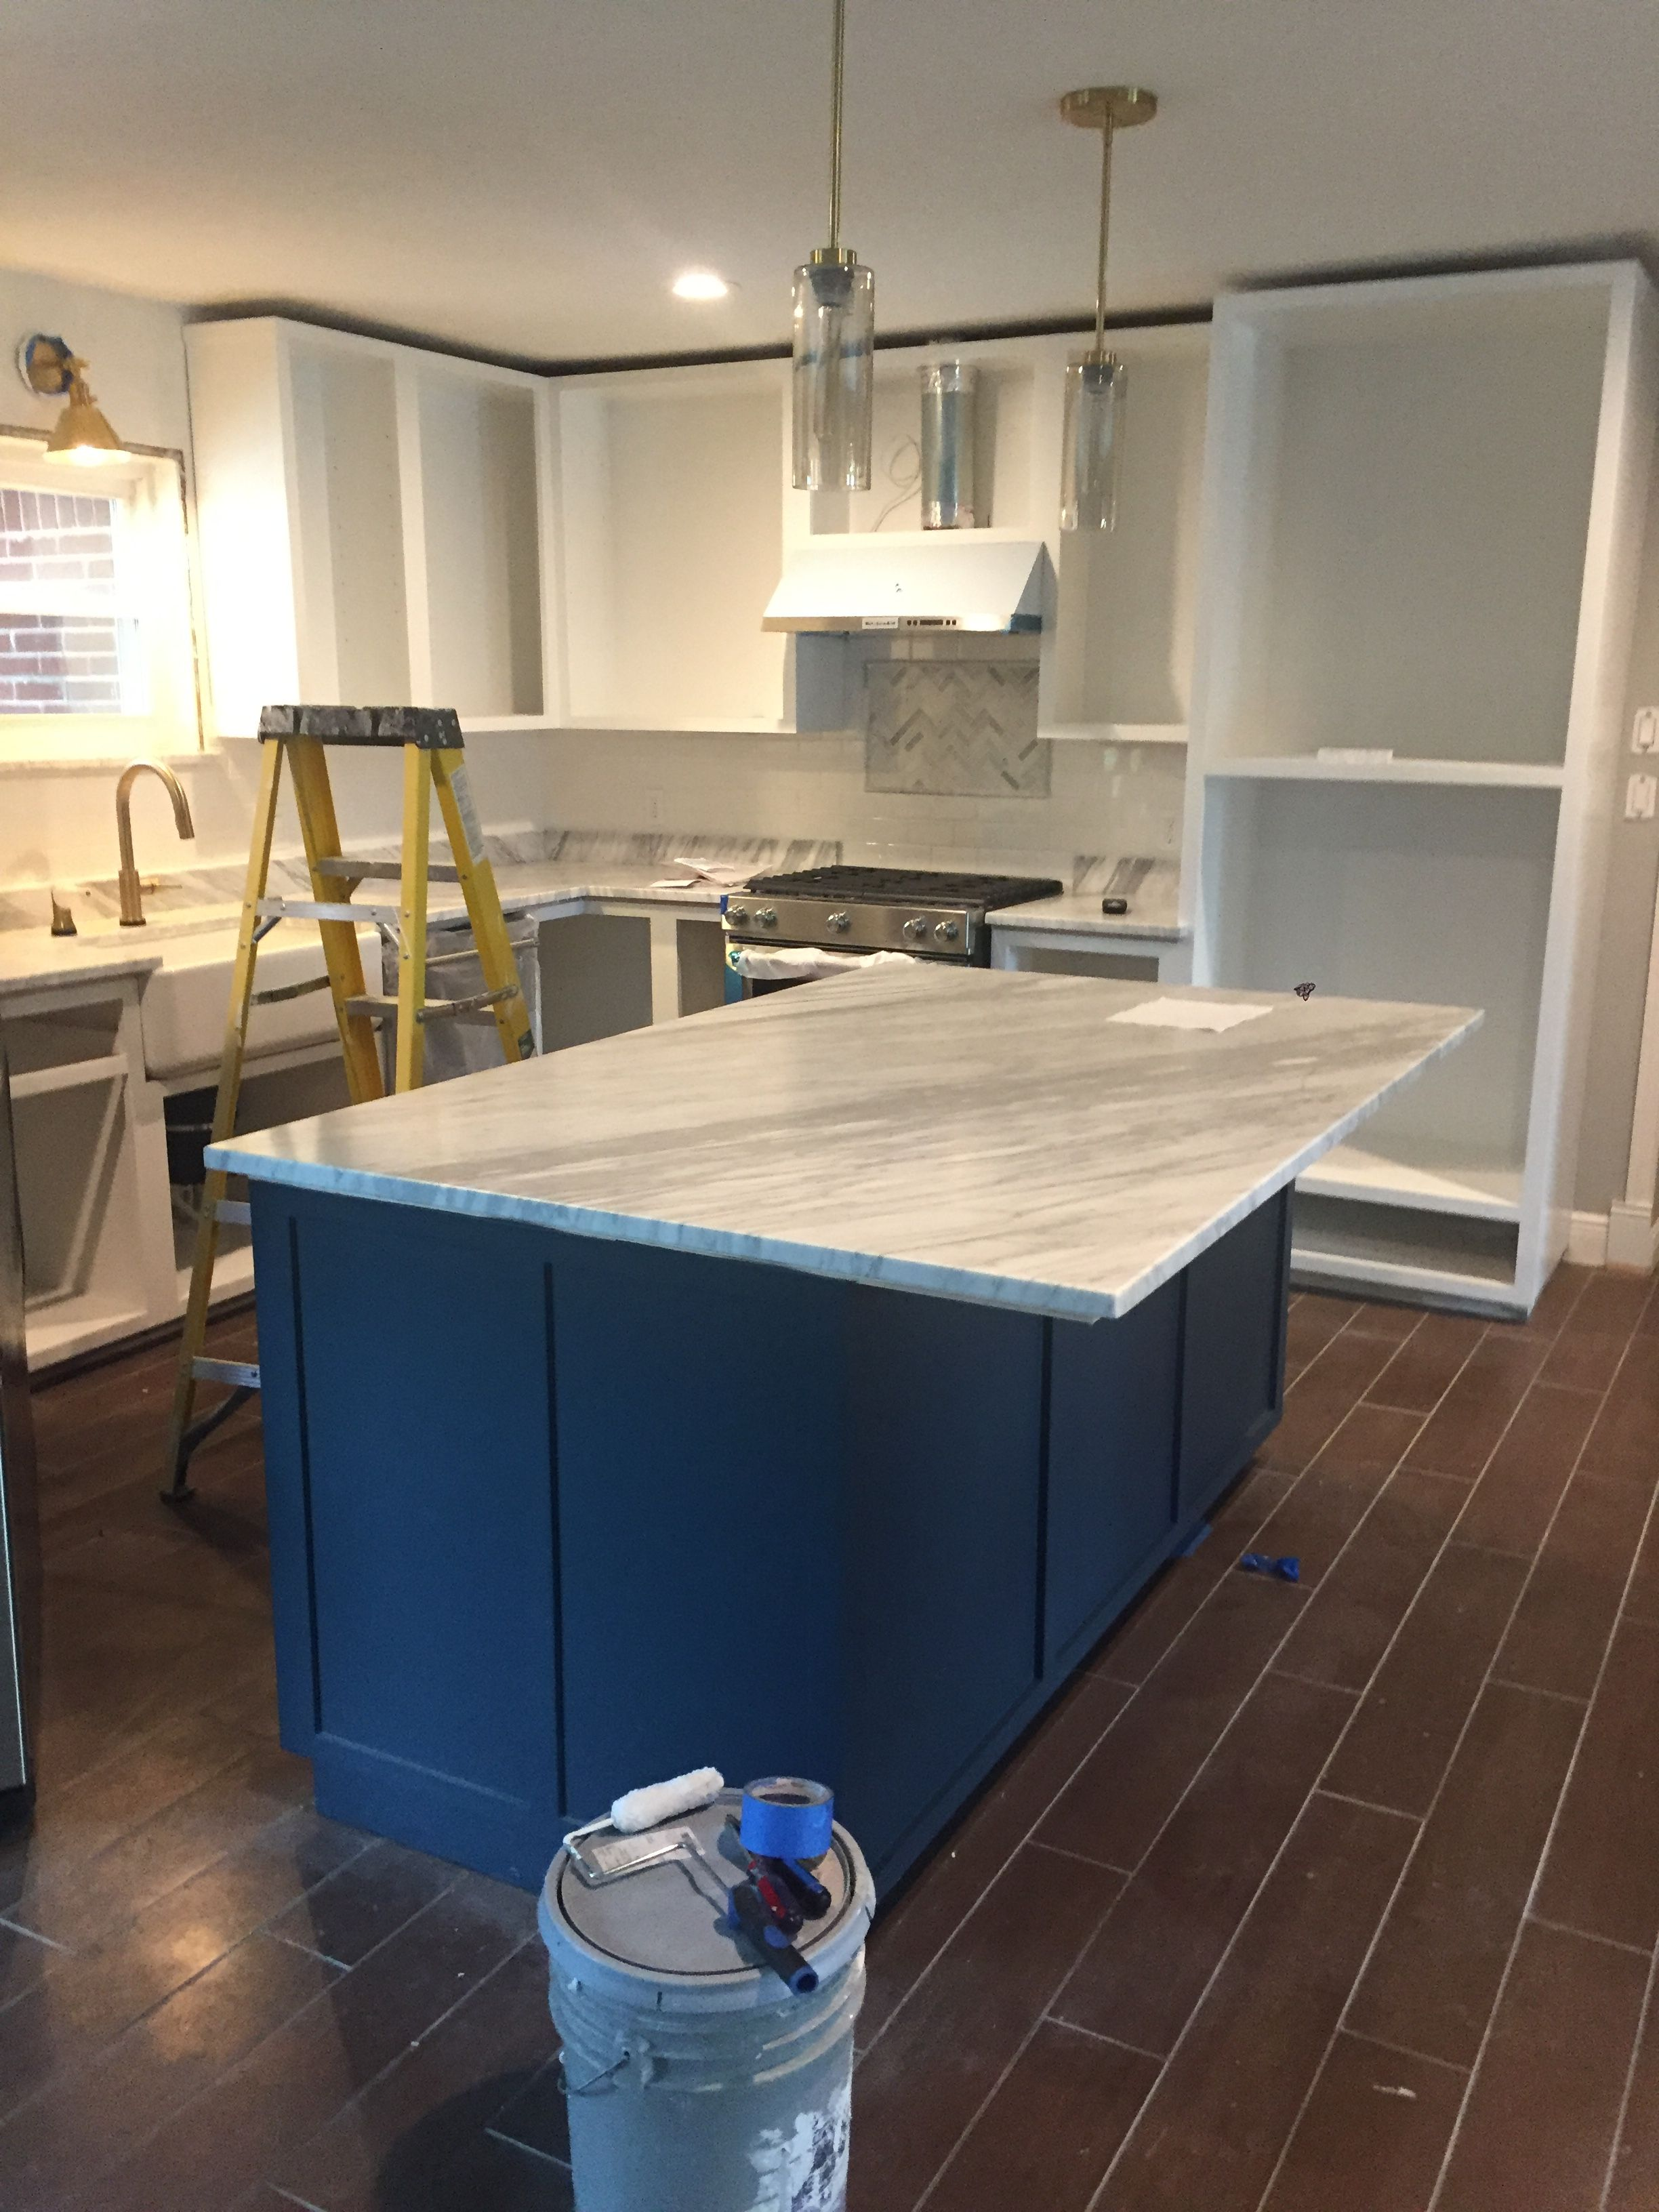 Sherwin-williams Countertop Paint Sherwin Williams Sea Serpent Kitchen Island Seaserpent Paint